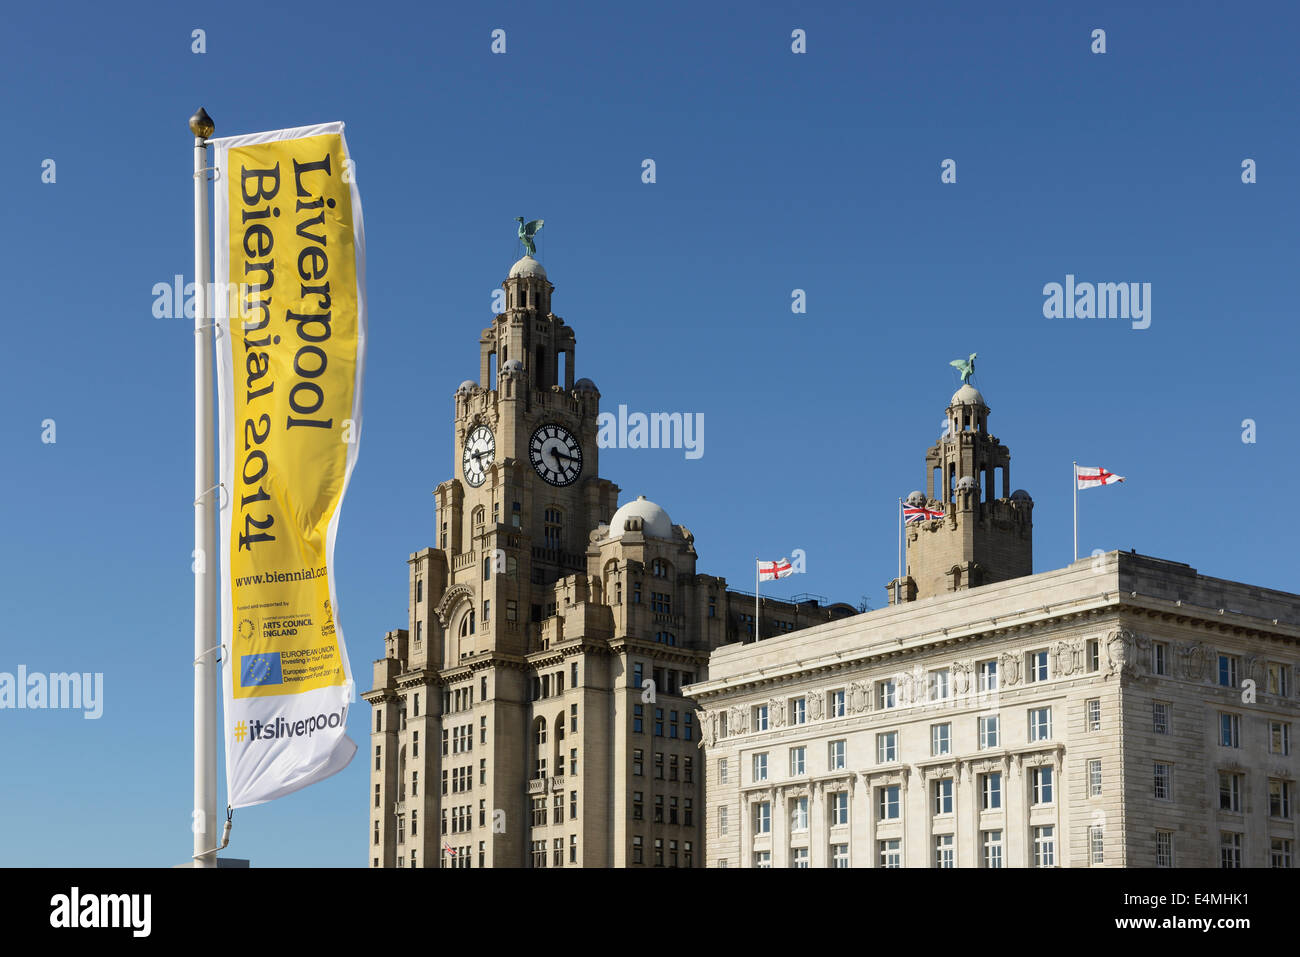 Banners for the Liverpool Biennial 2014 outside the Liver Building in Liverpool city centre - Stock Image